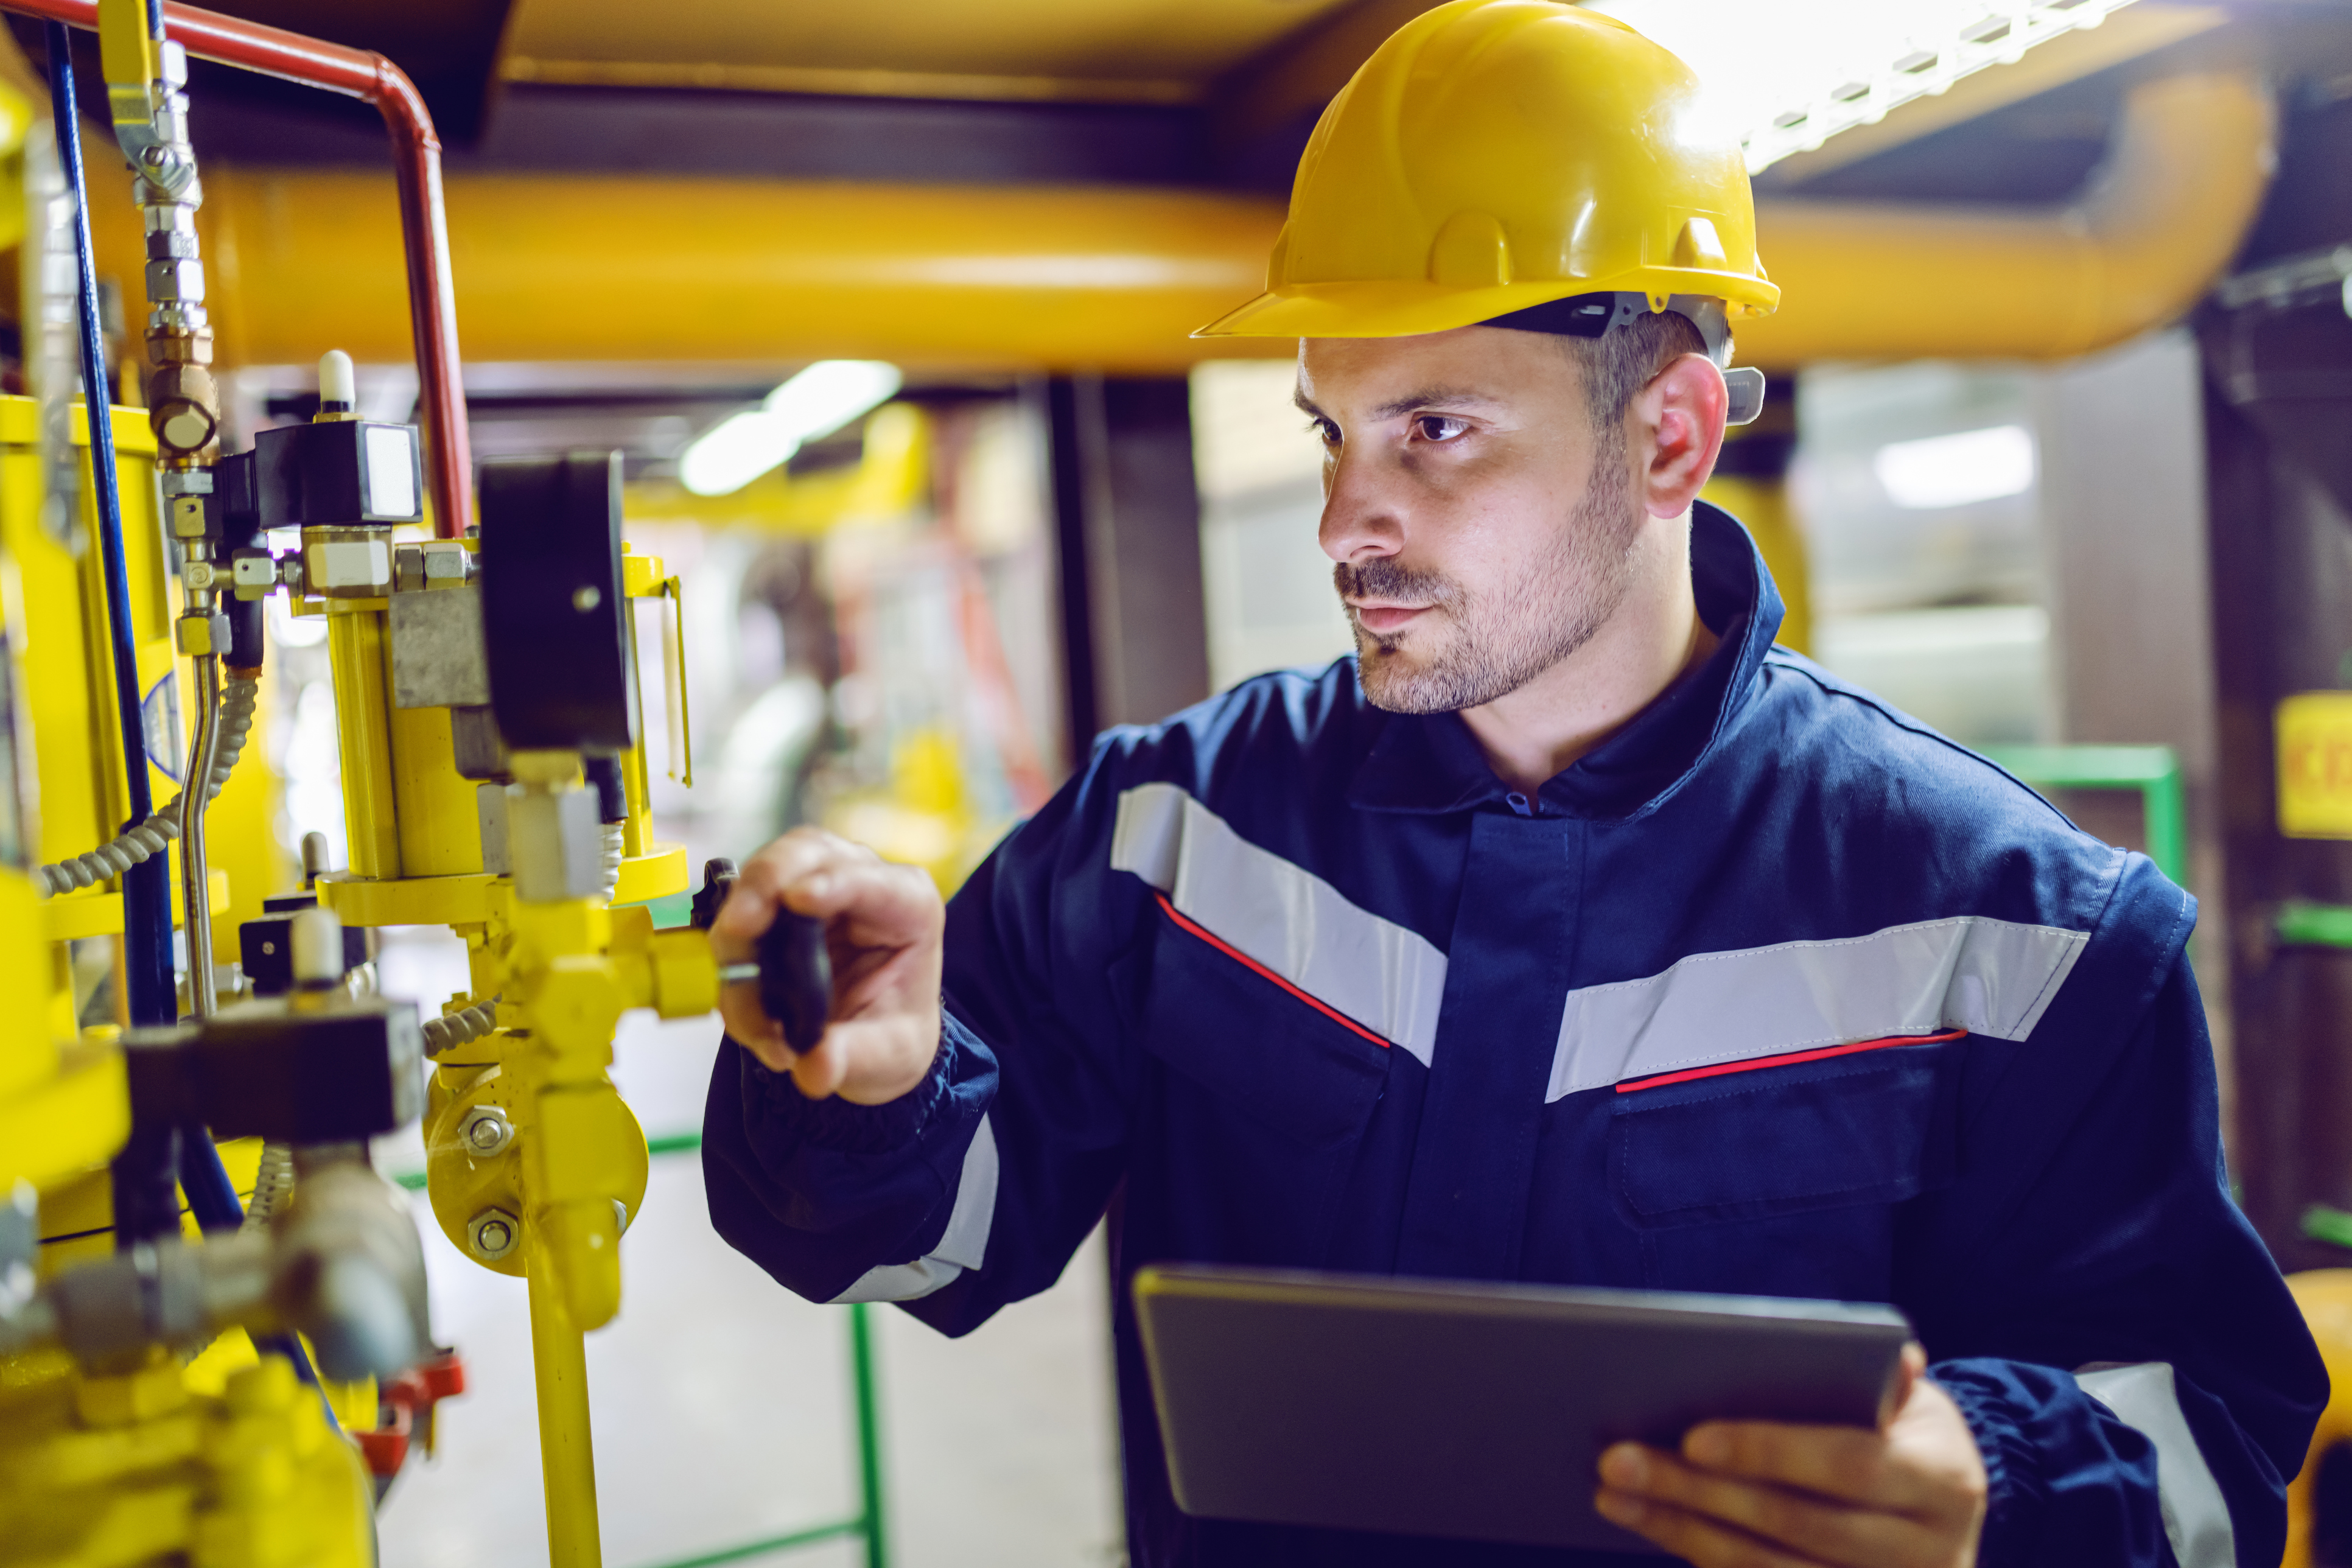 plant-worker-in-energy-industry-using-EHS-software